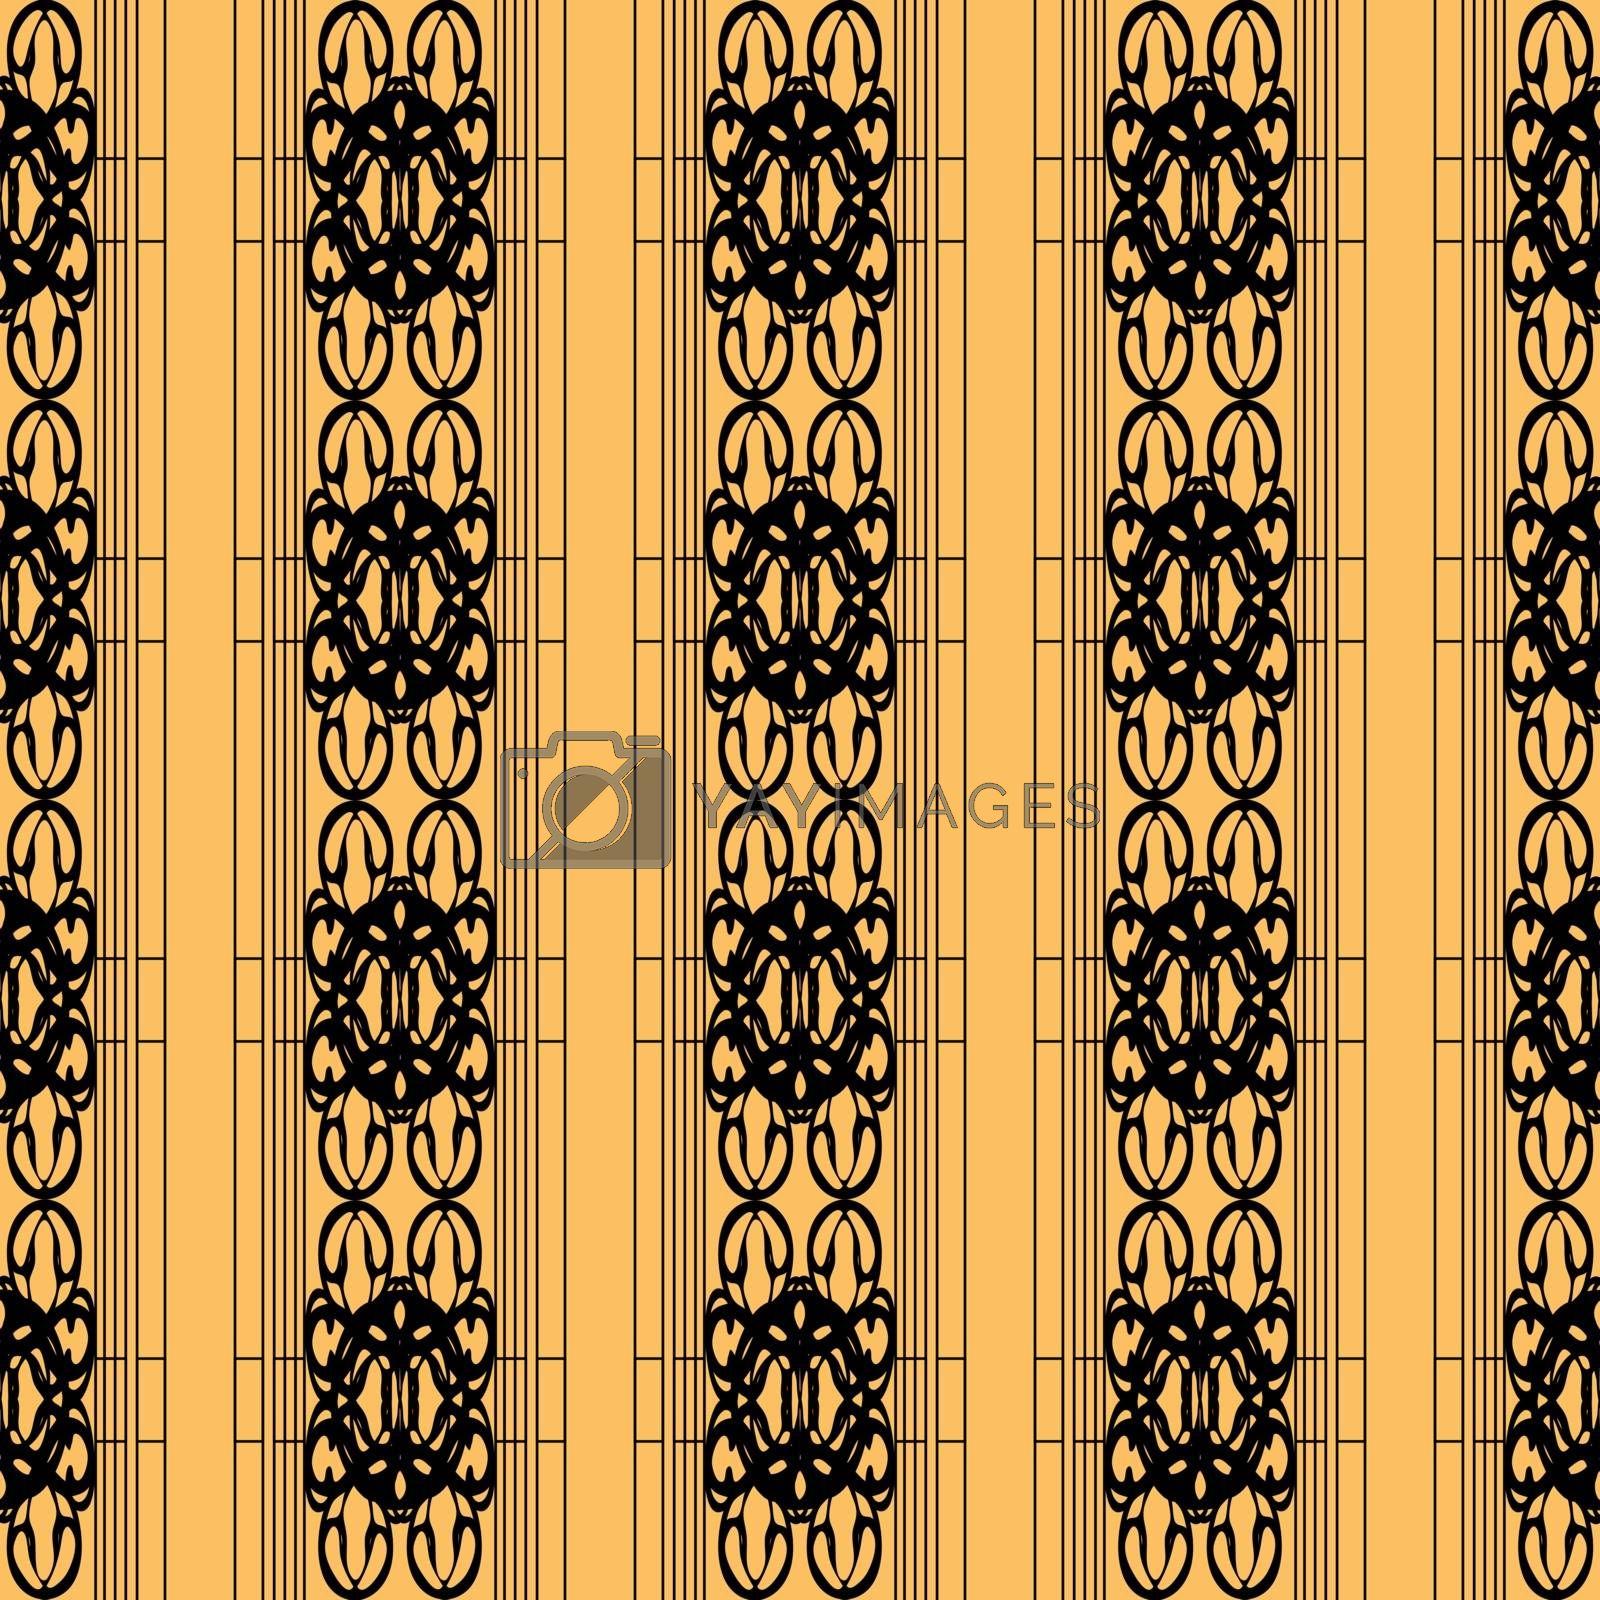 elegant black and gold ornament or wallpaper pattern with striped tracery